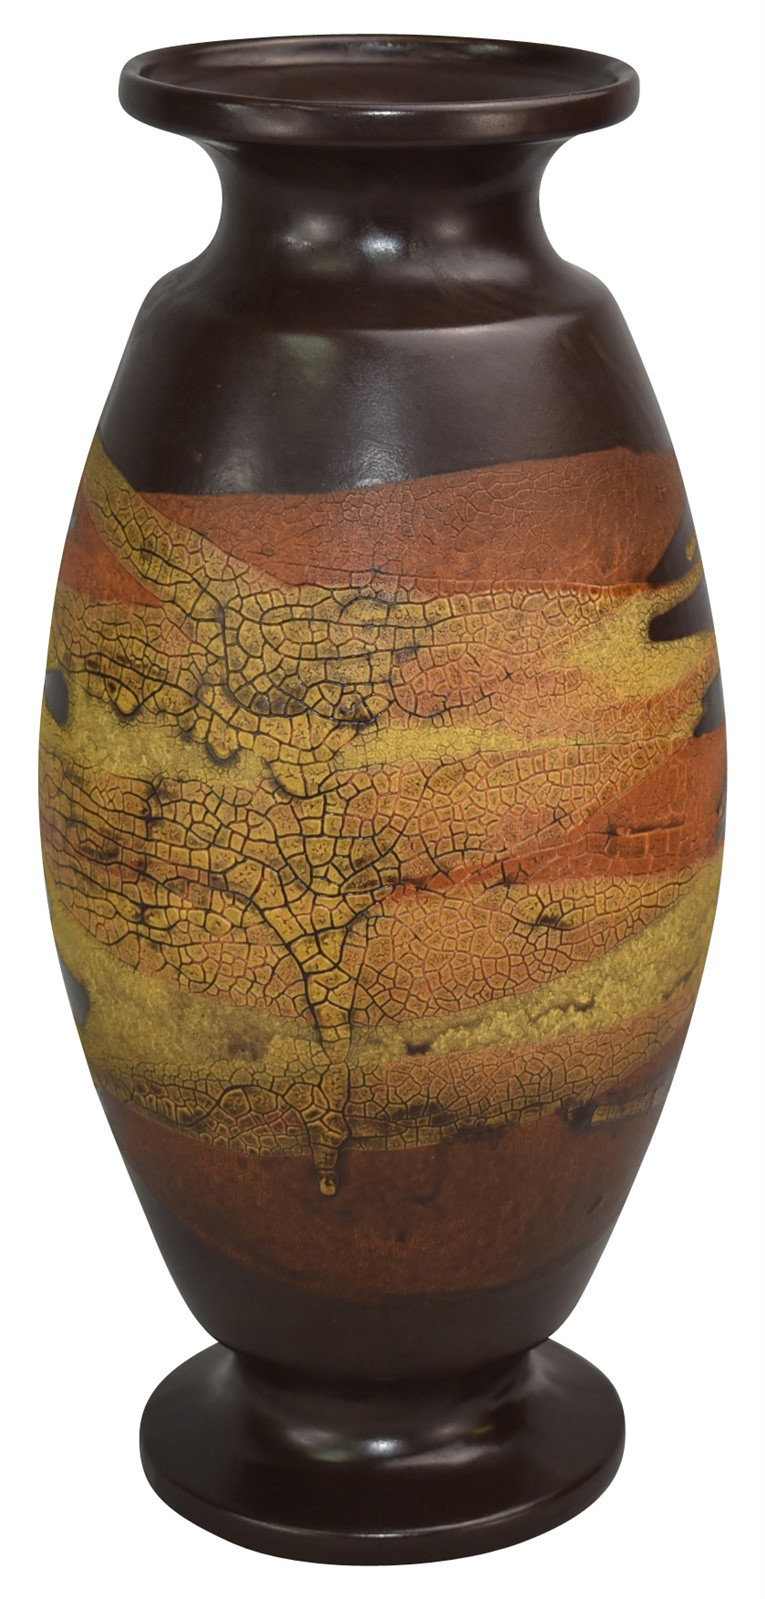 stangl pottery vase of just art pottery from just art pottery throughout haeger pottery brown earth wrap vase shape 4142